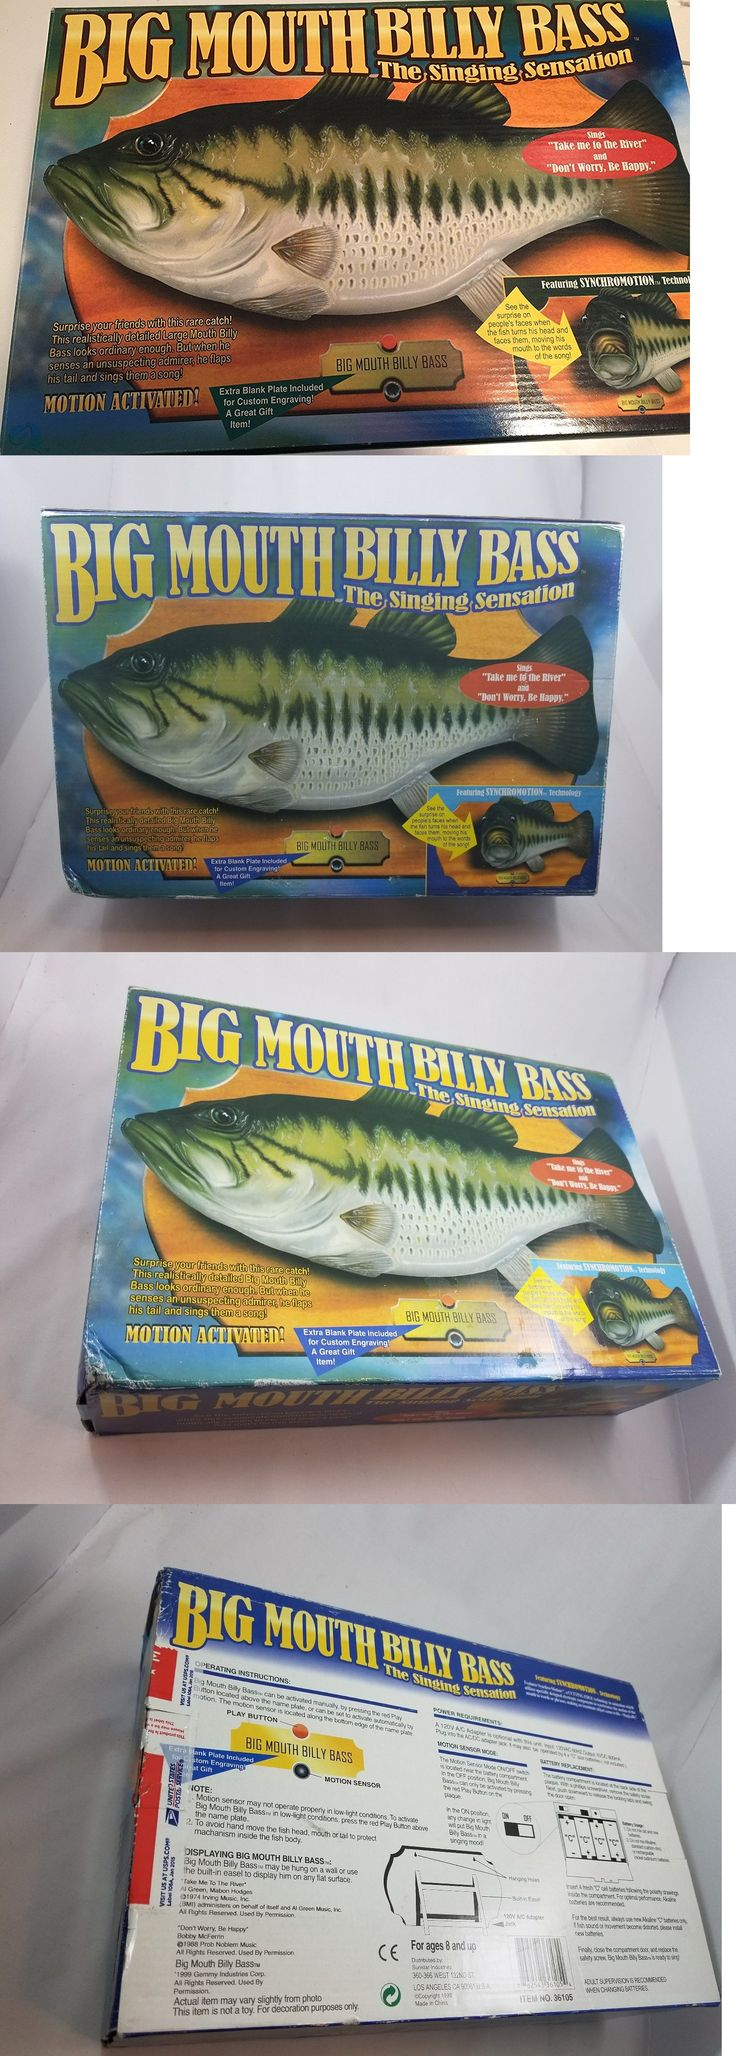 Novelties and Gifts 62143: Big Mouth Billy Bass Singing Fish Tested Works Great!! Gemmy With Box With Easel -> BUY IT NOW ONLY: $59.99 on eBay!